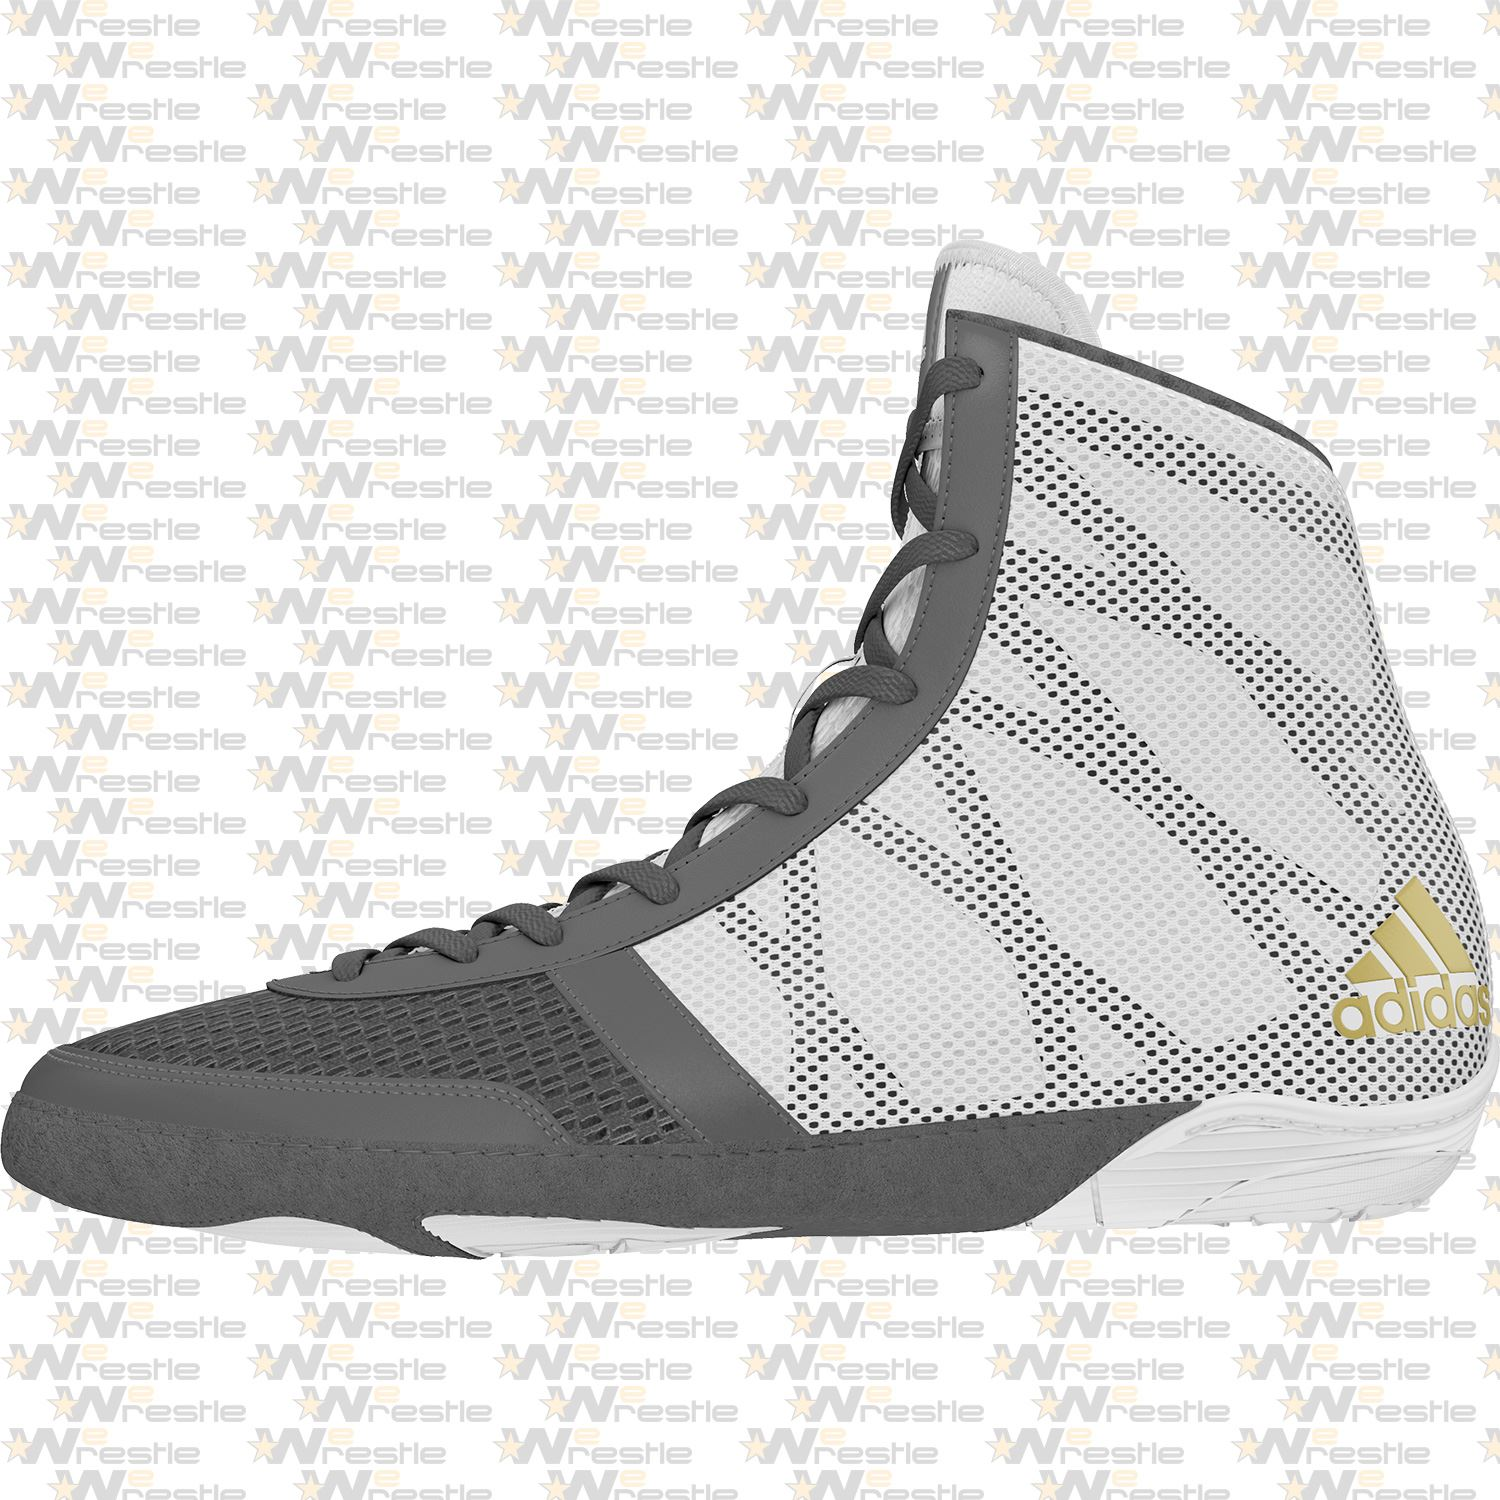 ... new arrivals adidas pretereo 3 wrestling shoes 07200 07a6b 36fc029ed